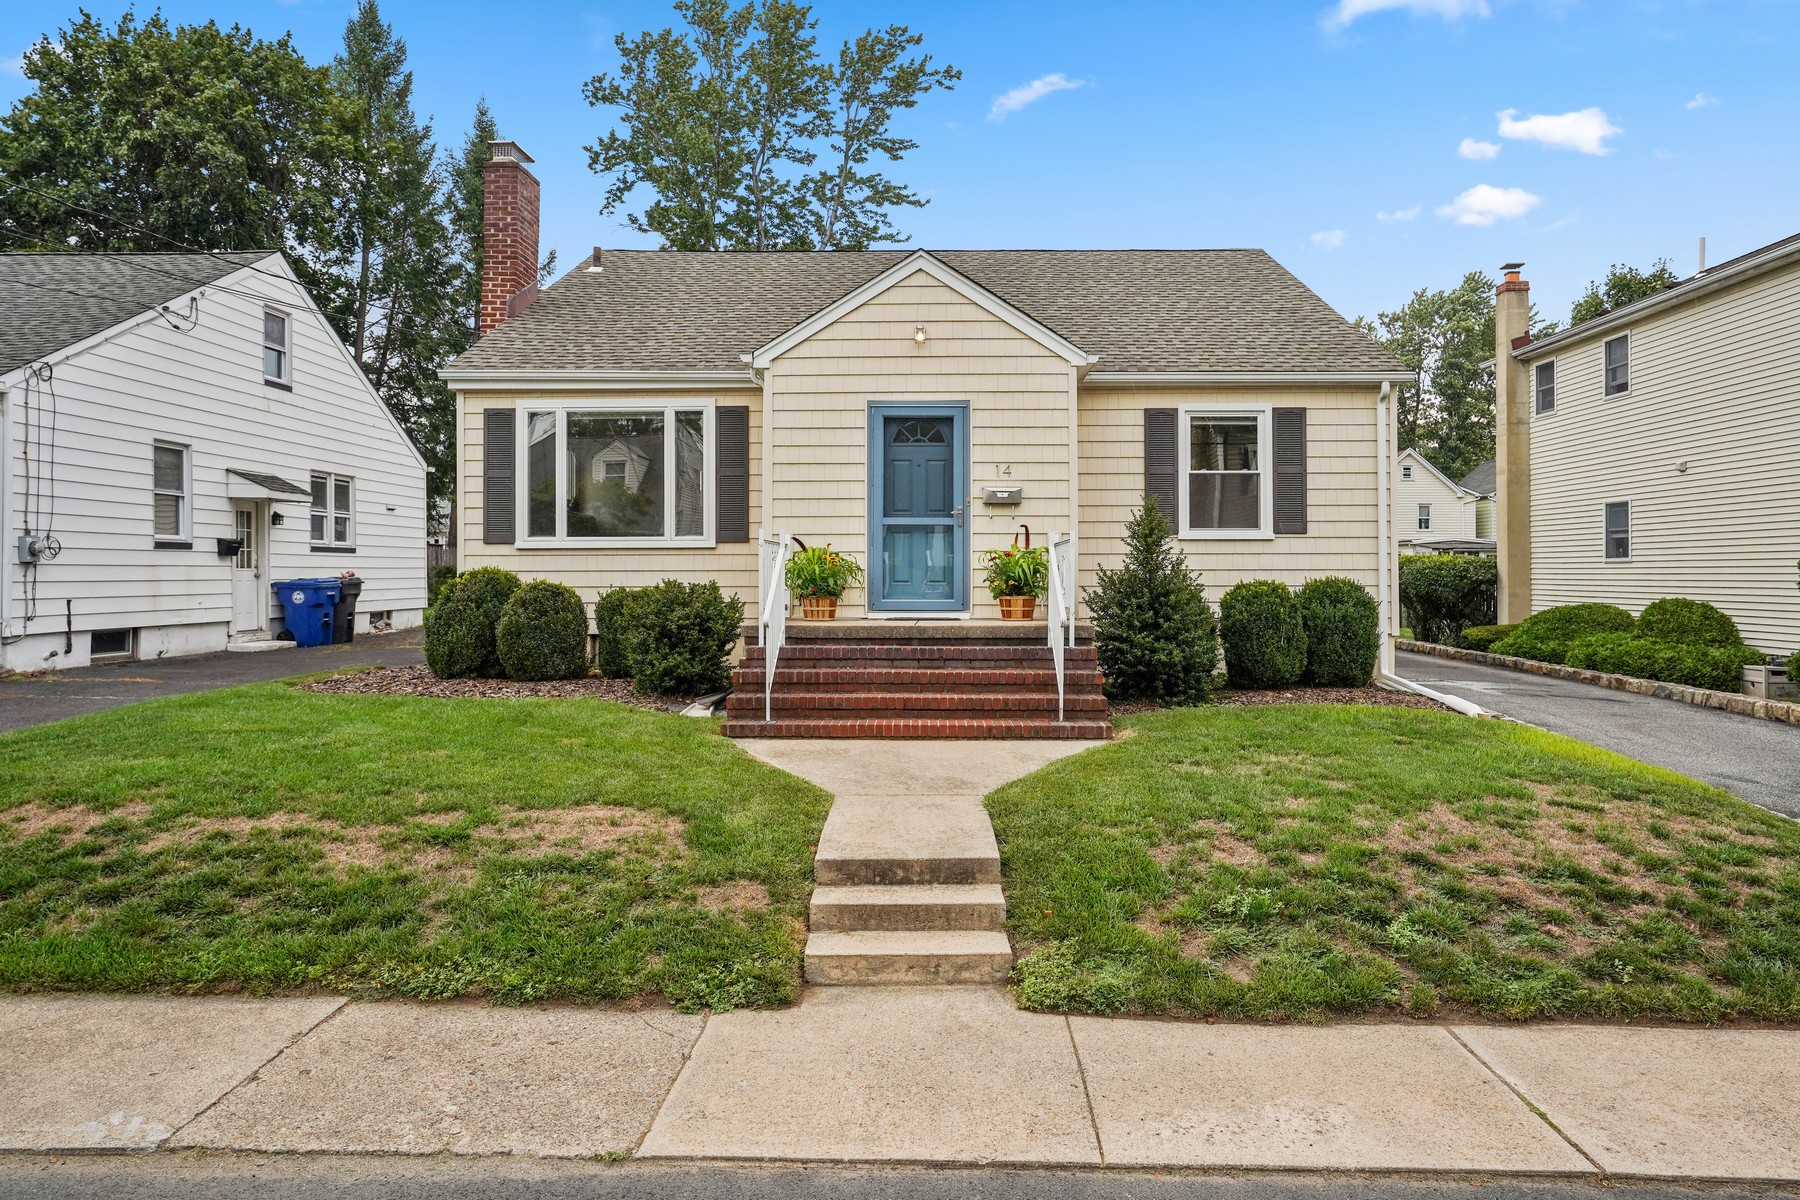 Single Family Homes for Active at Cozy Cape 14 Kennedy Road Morris Township, New Jersey 07960 United States